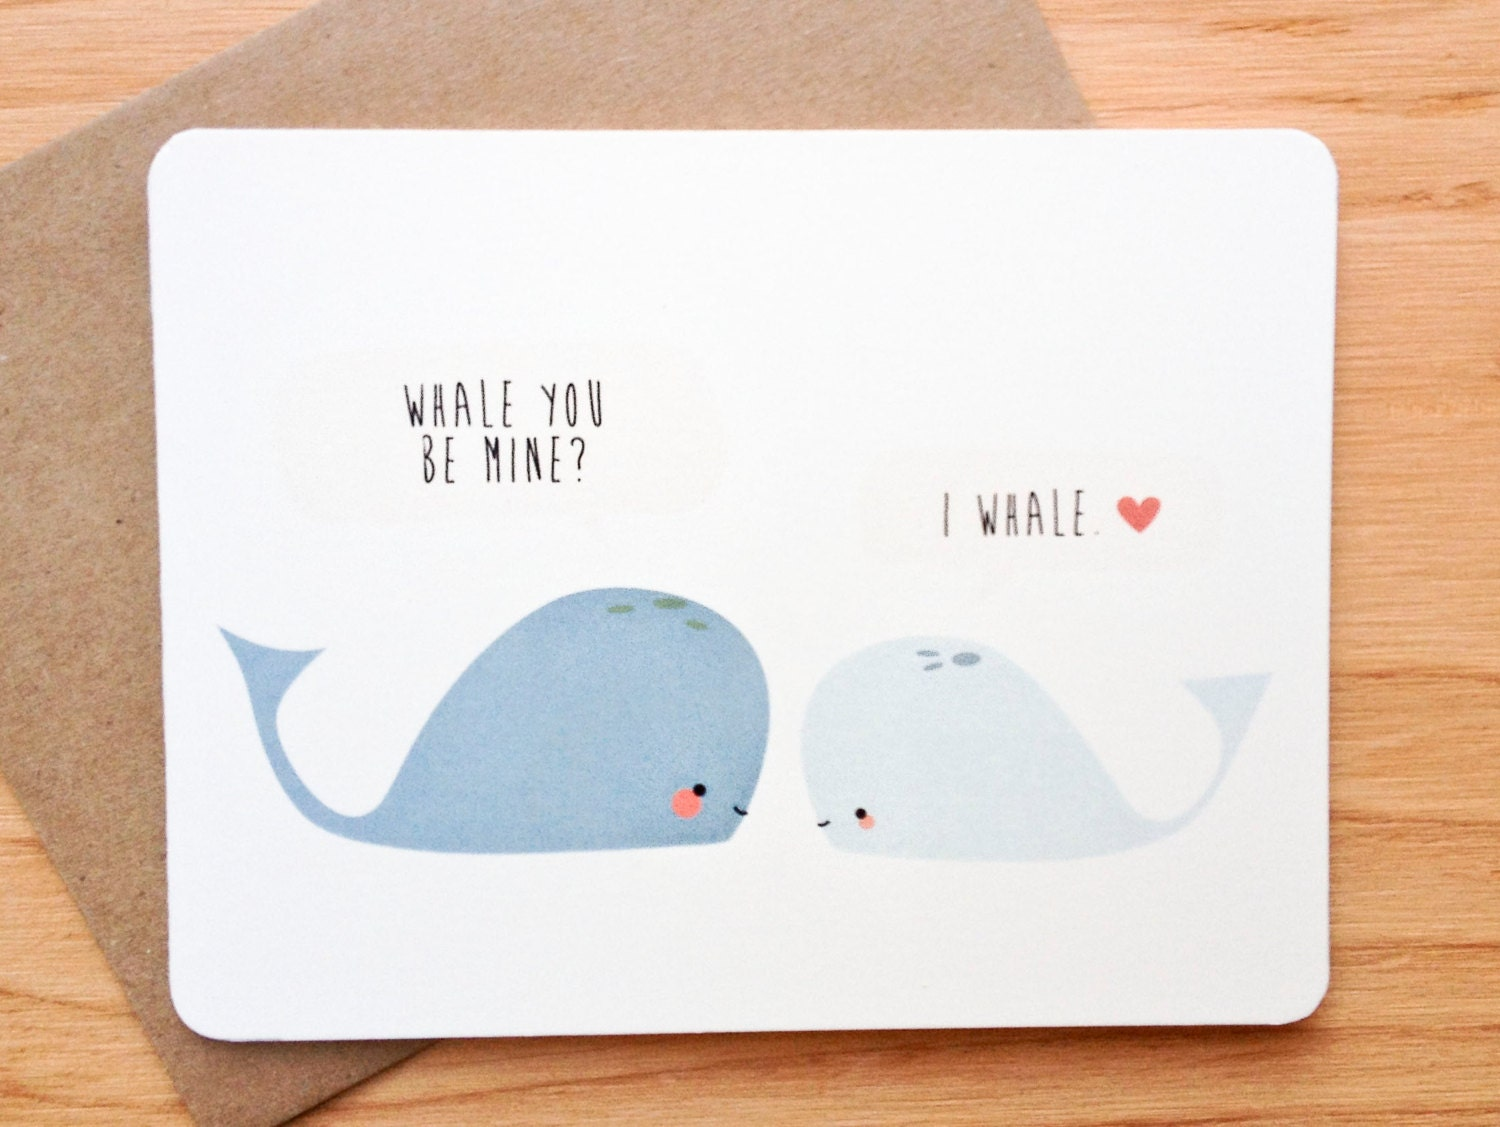 Cute animal puns for valentines day - photo#10